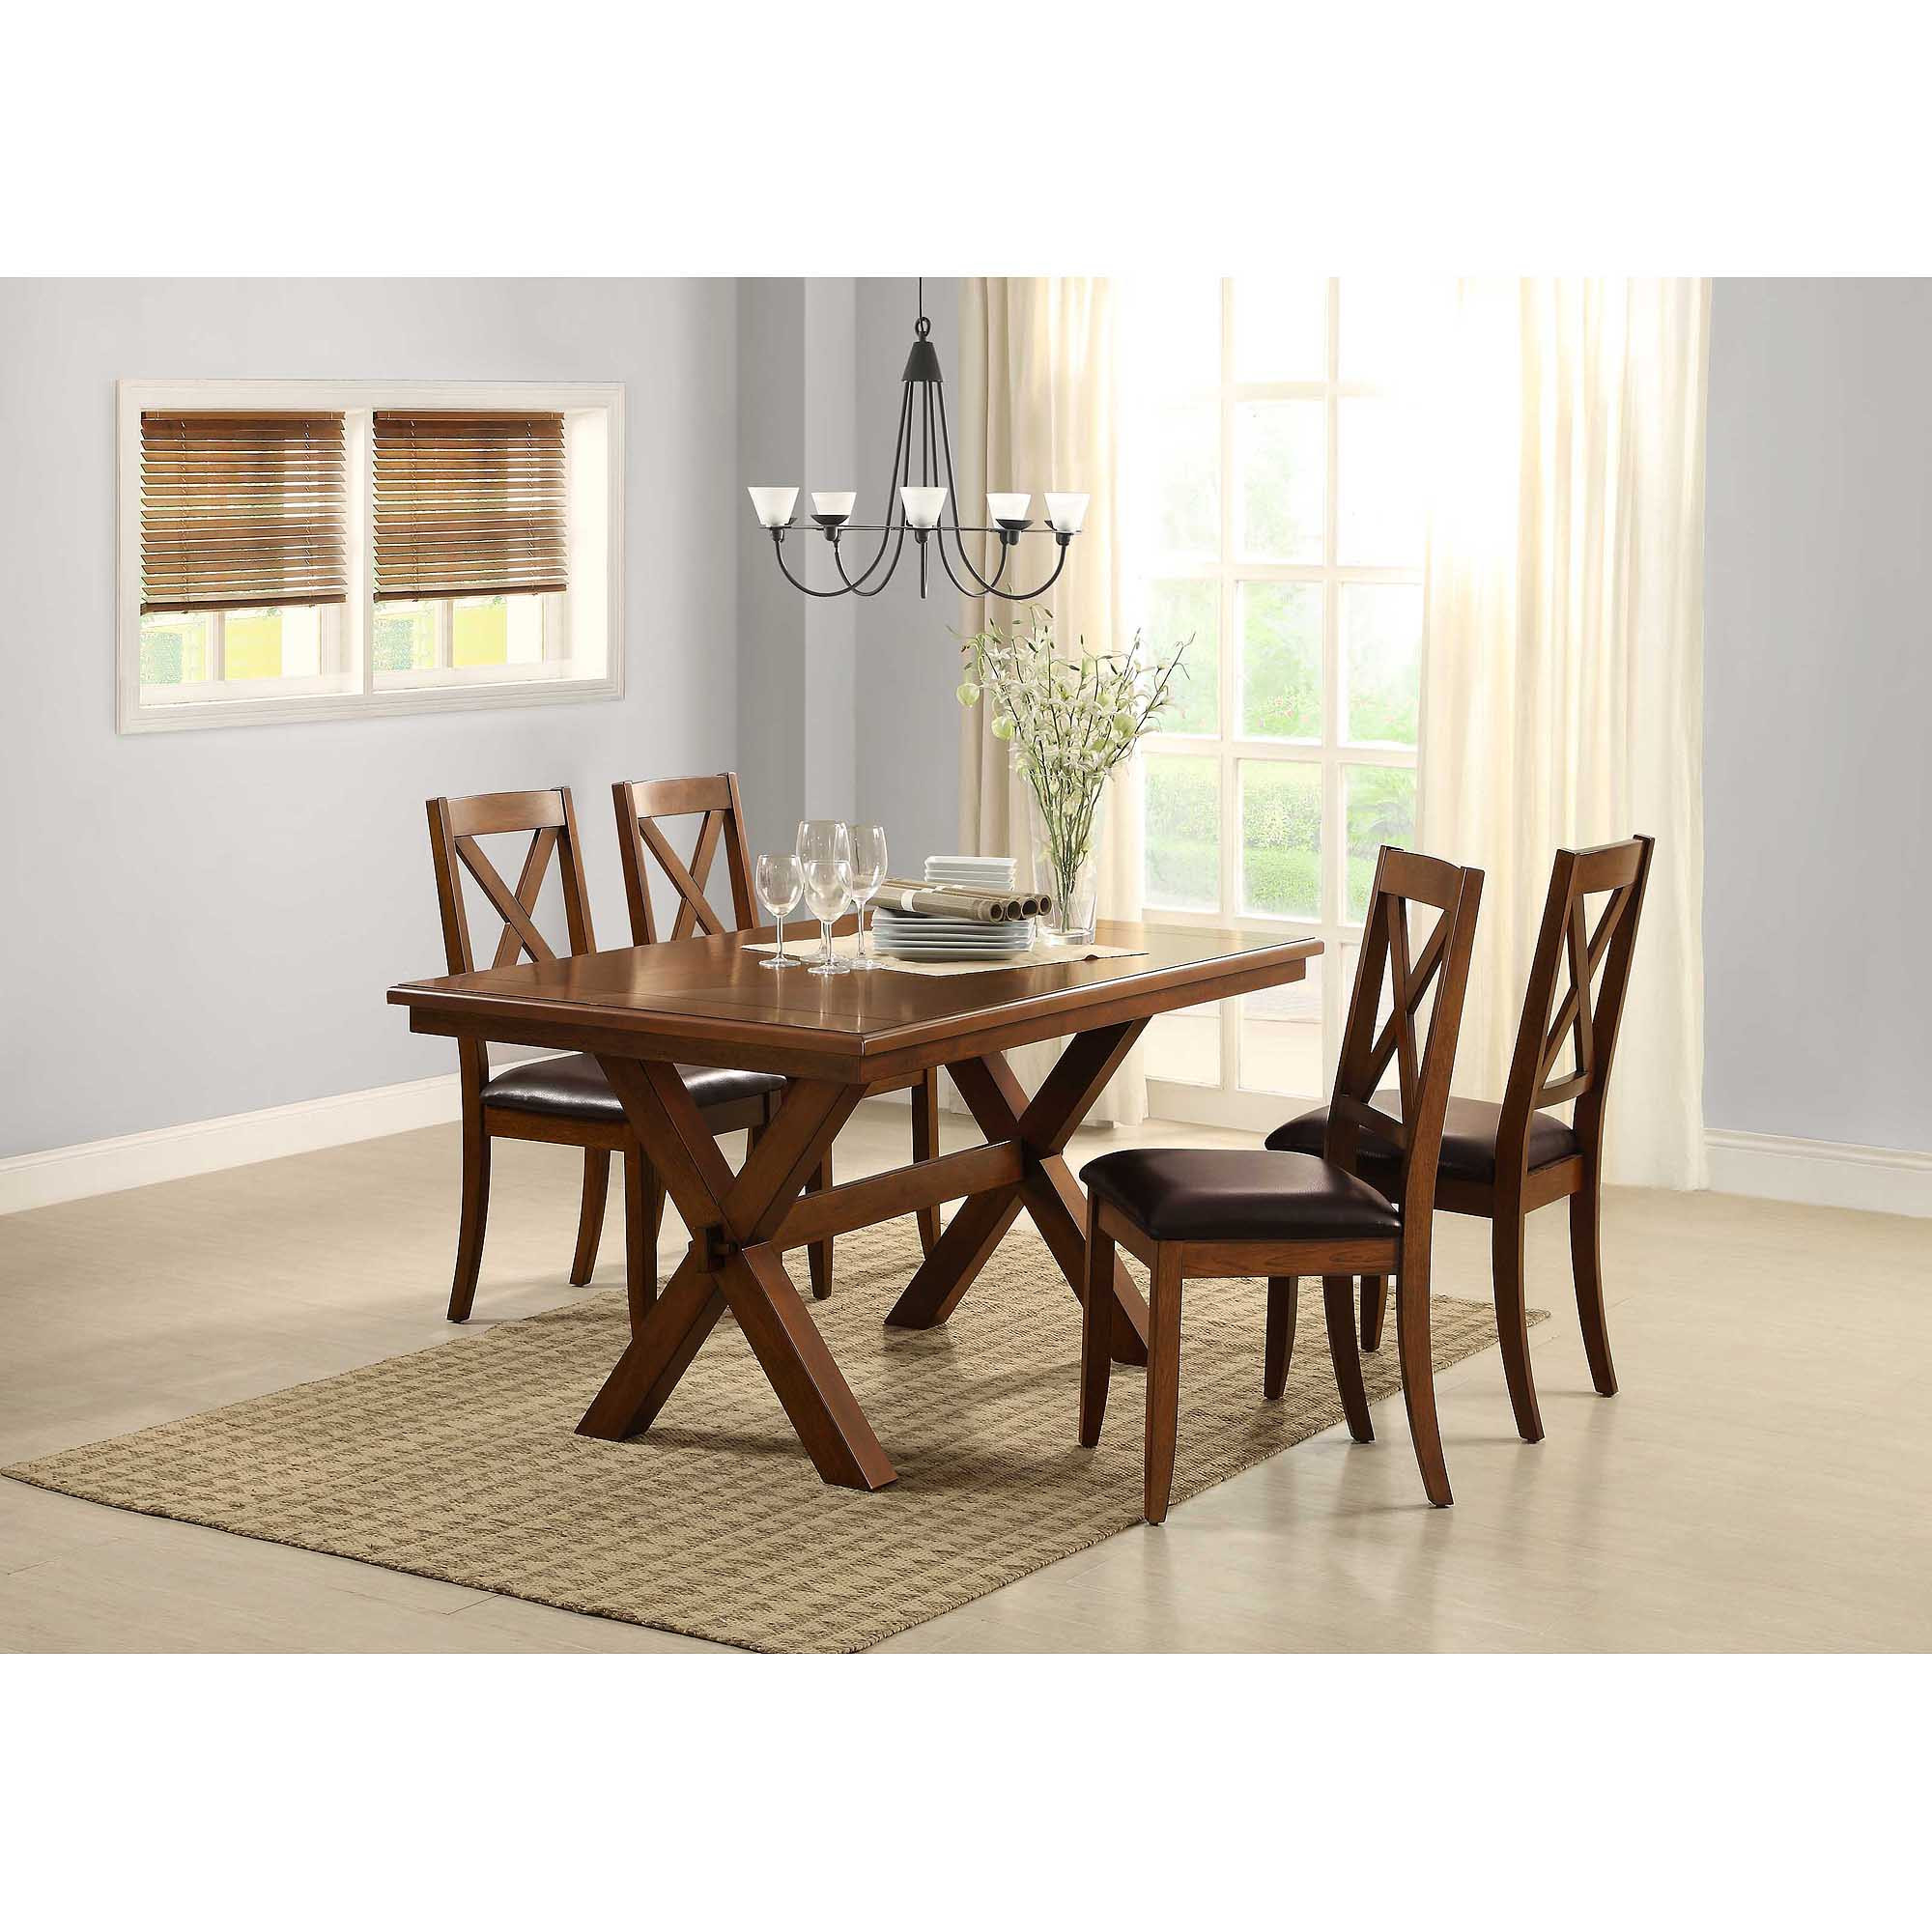 Living Room Tables Walmart  Furniture Inspiring Walmart Tables For Your Home